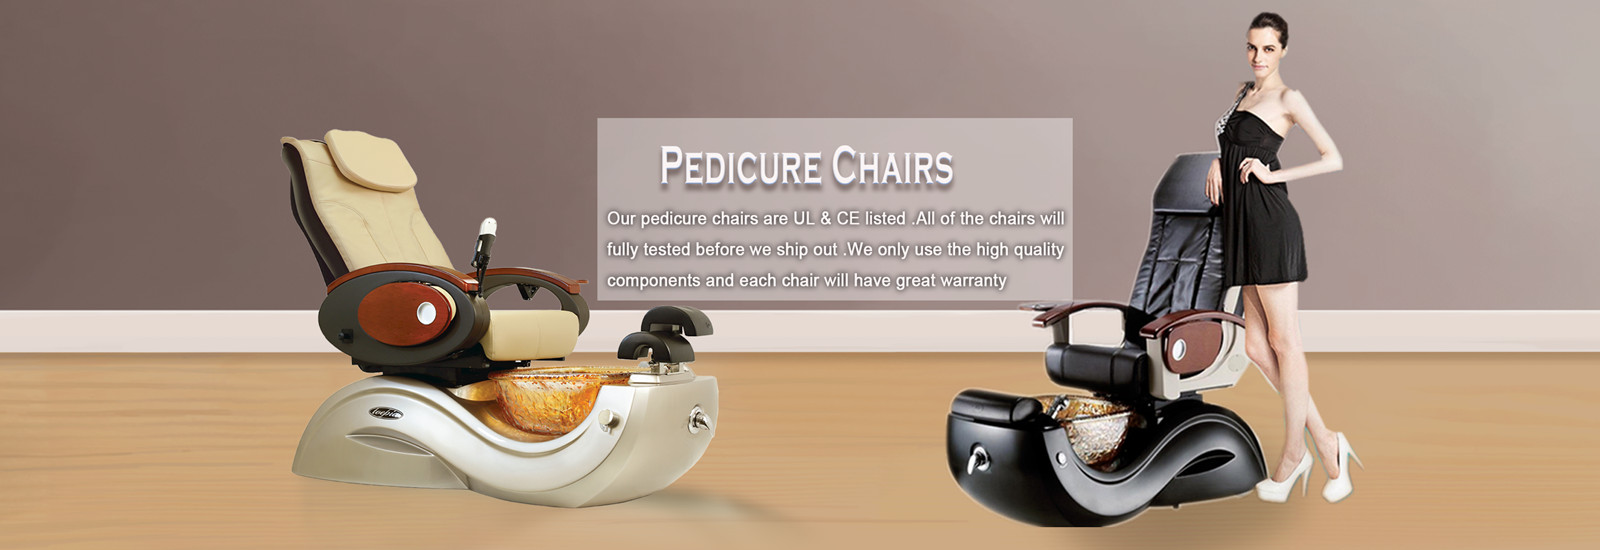 china foot spa pedicure tub factory,china foot pedicure tub manufacturer,china pipeless pedicure tub wholesale